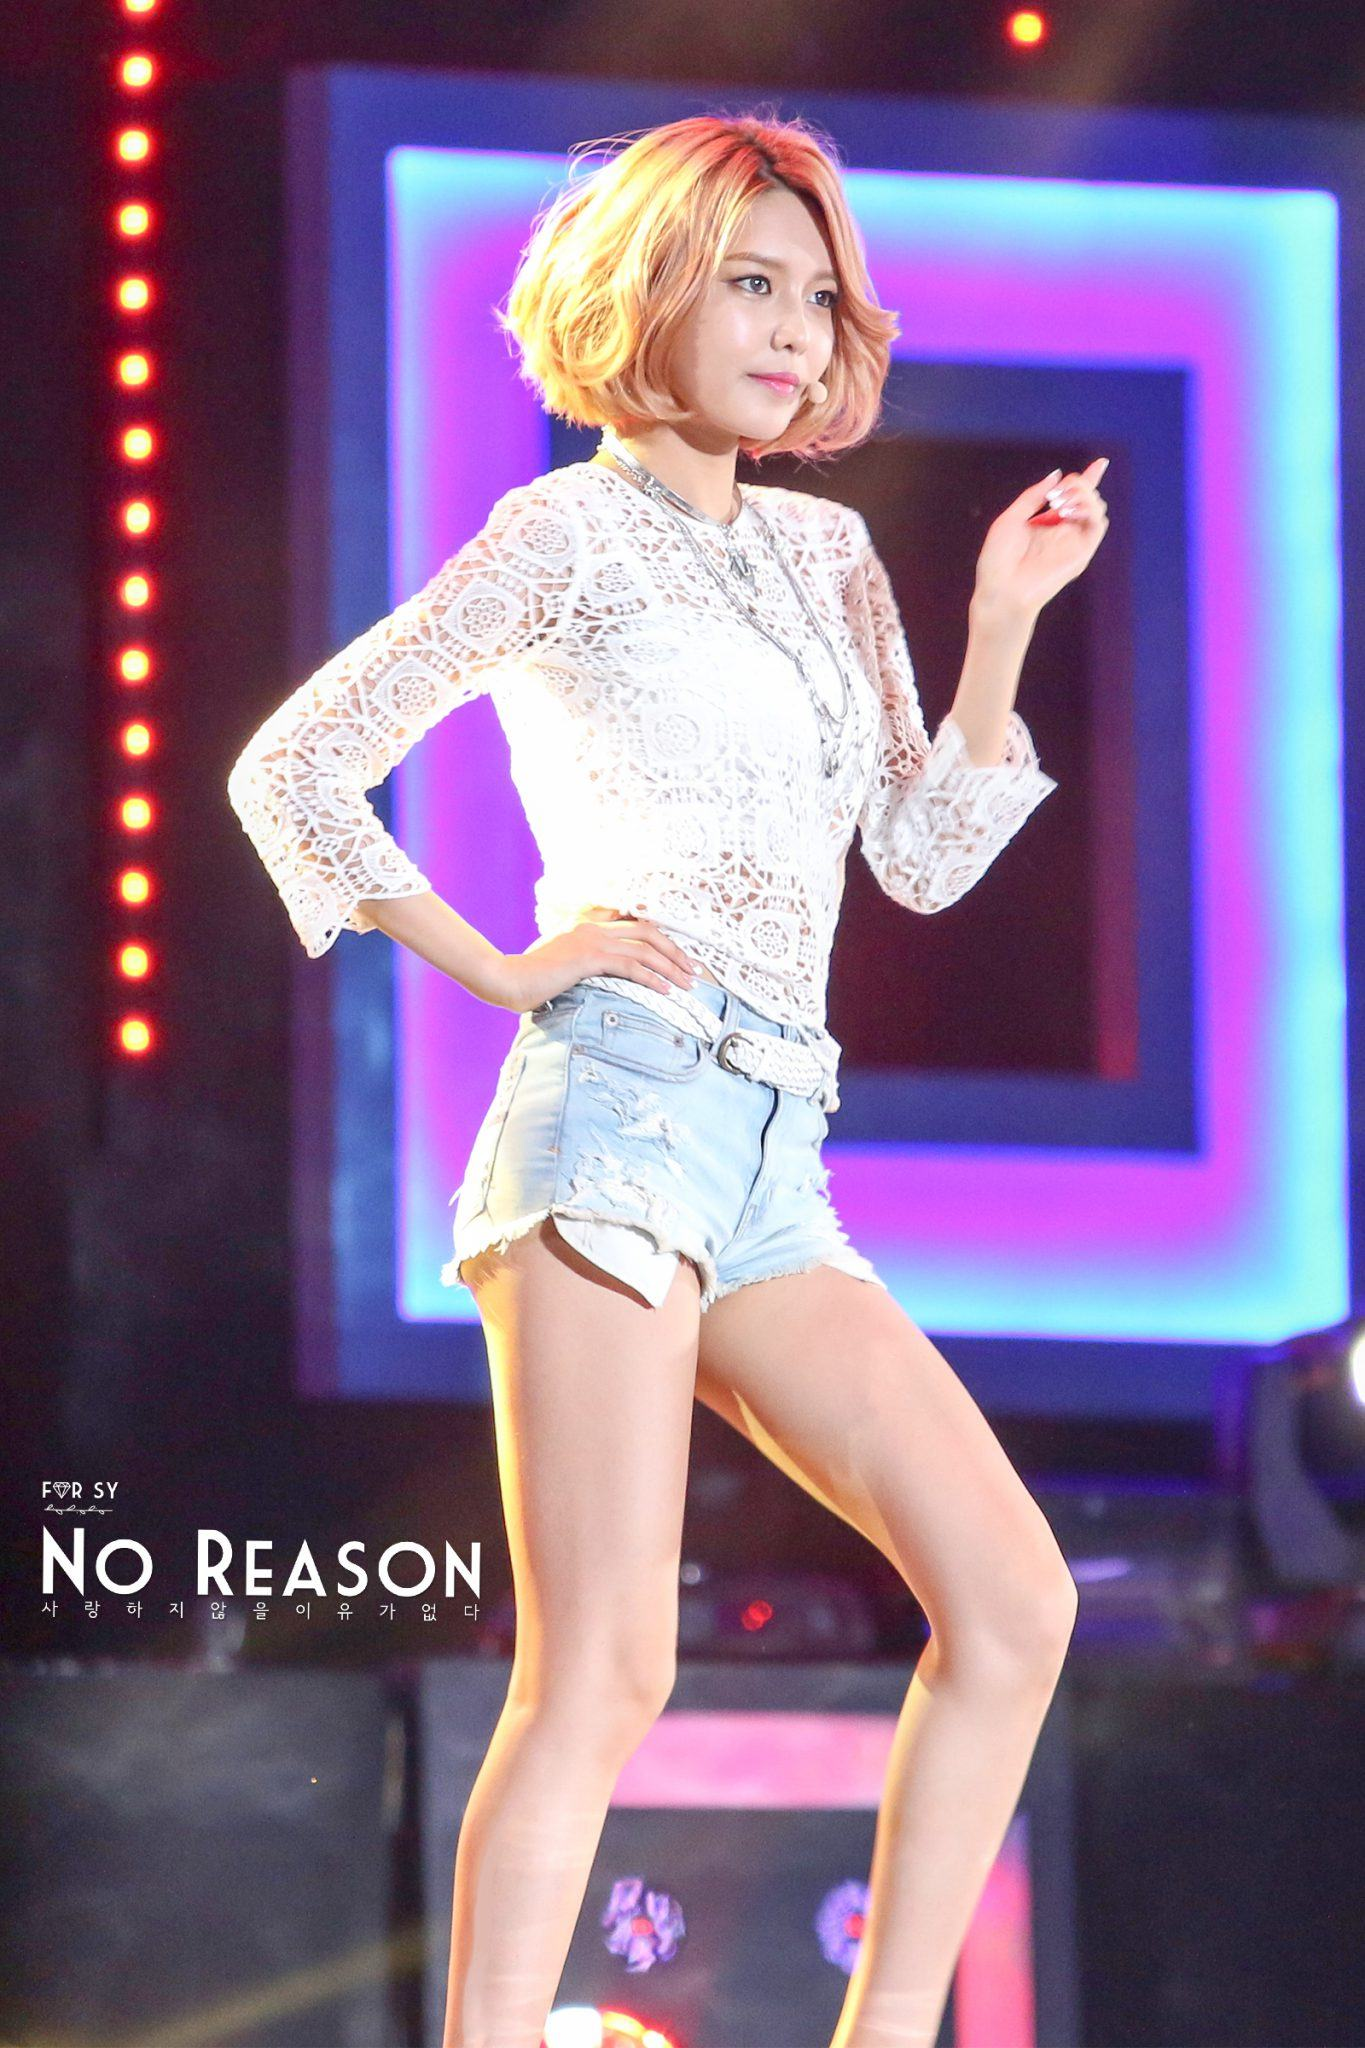 13 Of The Hottest Pairs Of Legs Right Now In K-Pop | Hwasa